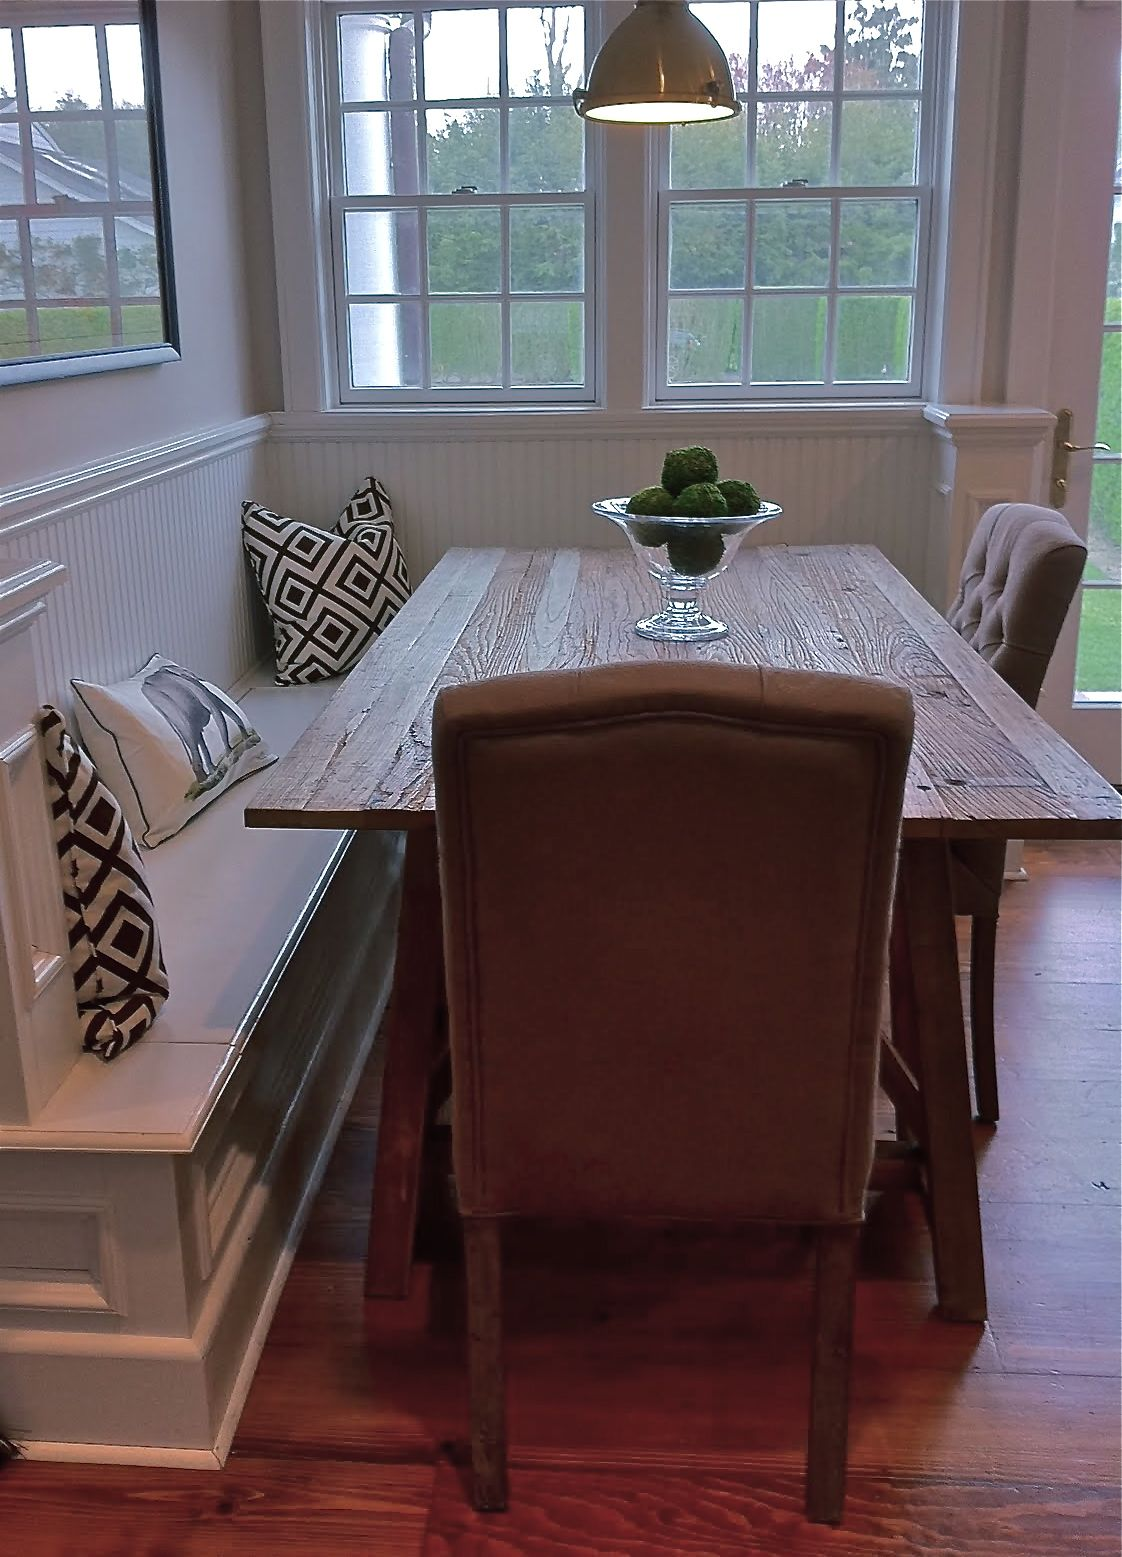 Establecido conservative dining pinterest neutral eye and room